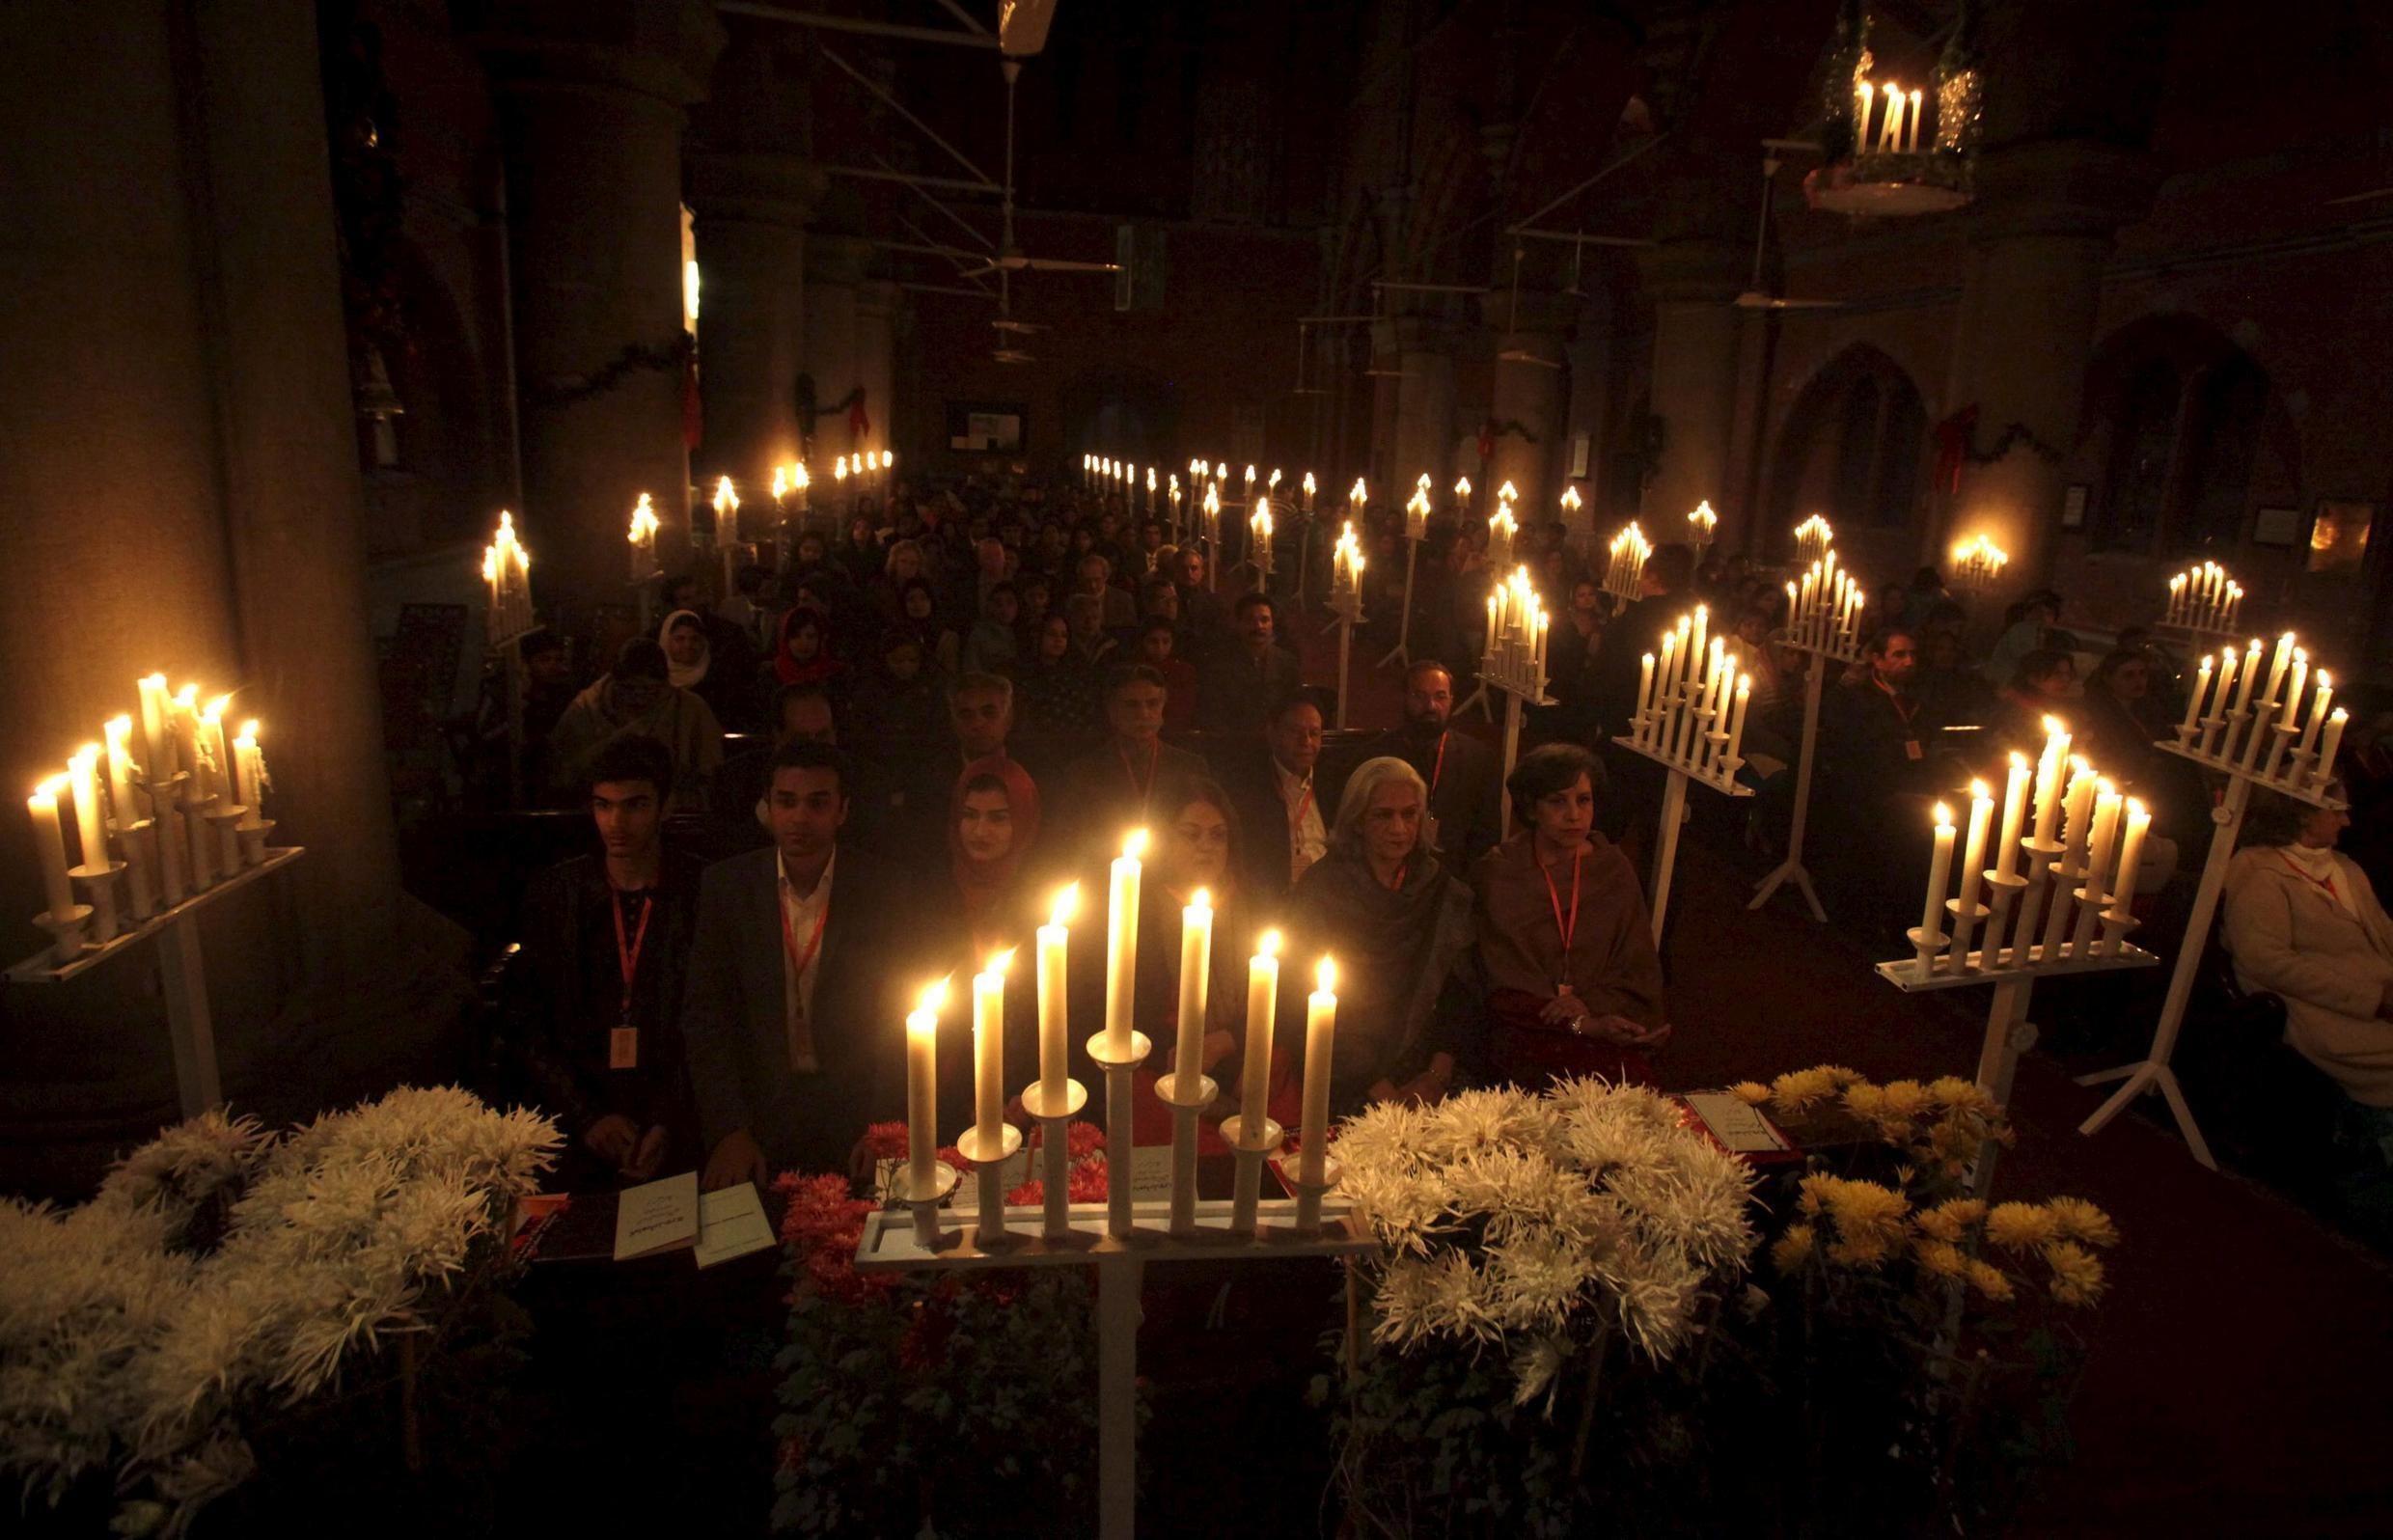 People attend a mass at a church in Lahore ahead of Christmas on 20 December, 2015.